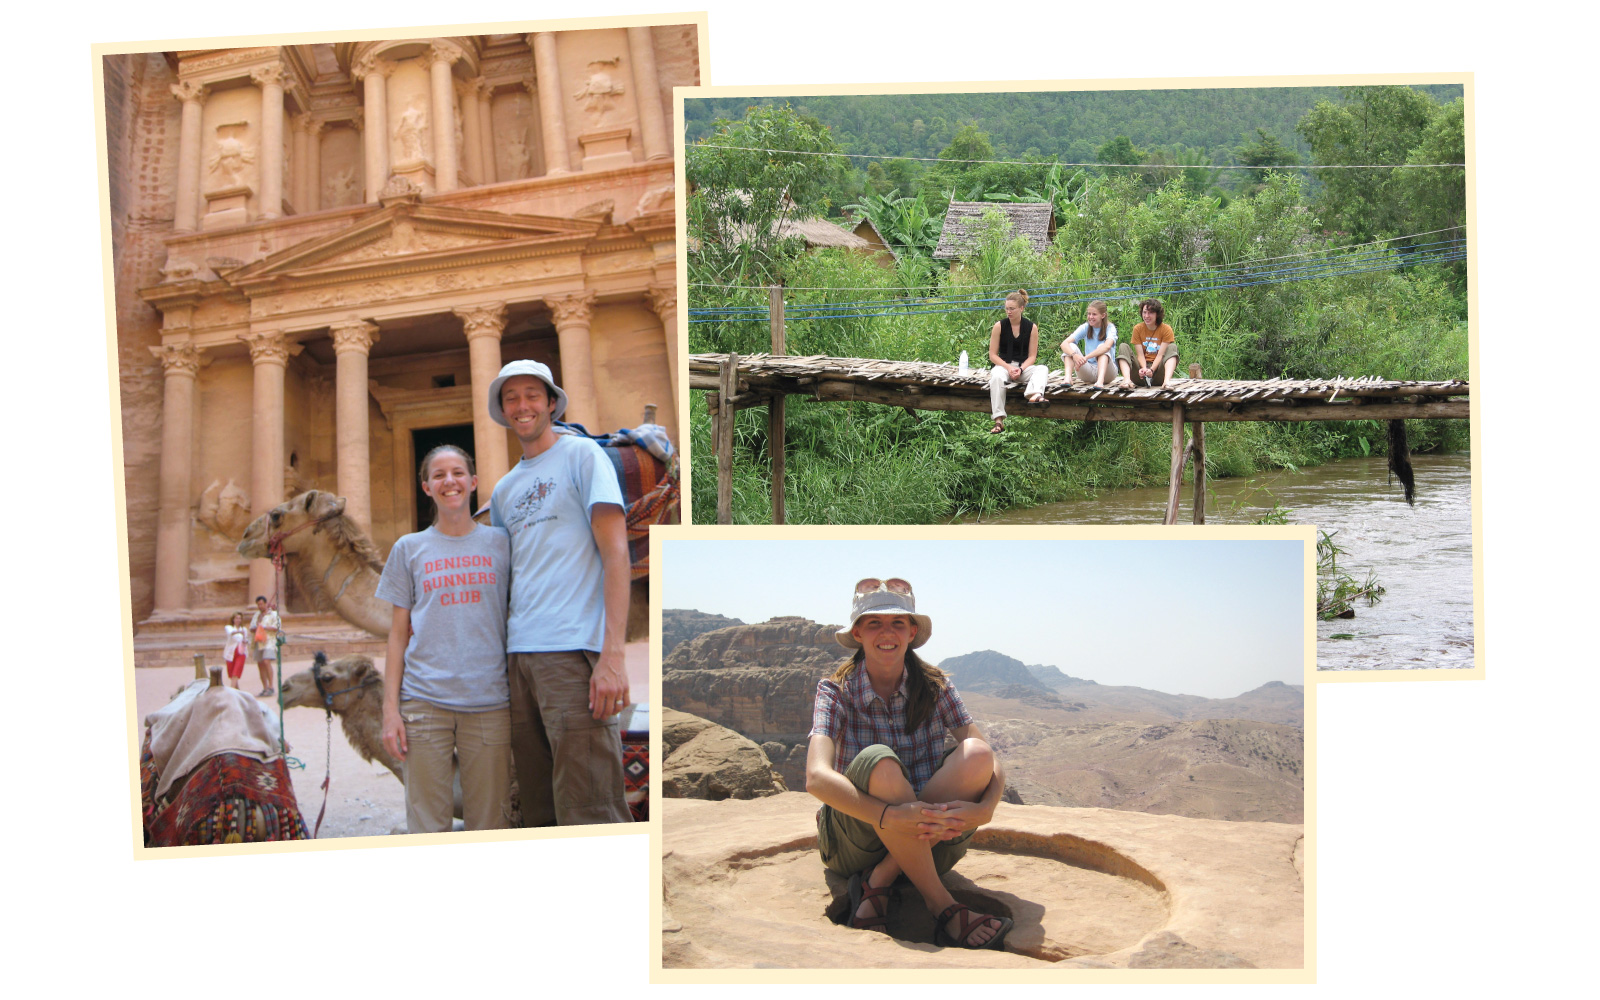 Mary Ann Bates' travels during her time at Denison and after graduation have influenced her work at J-PAL. Those travels included stops in Petra, Jordan (left, with her husband Matthew; and bottom right) and Thailand (top right).